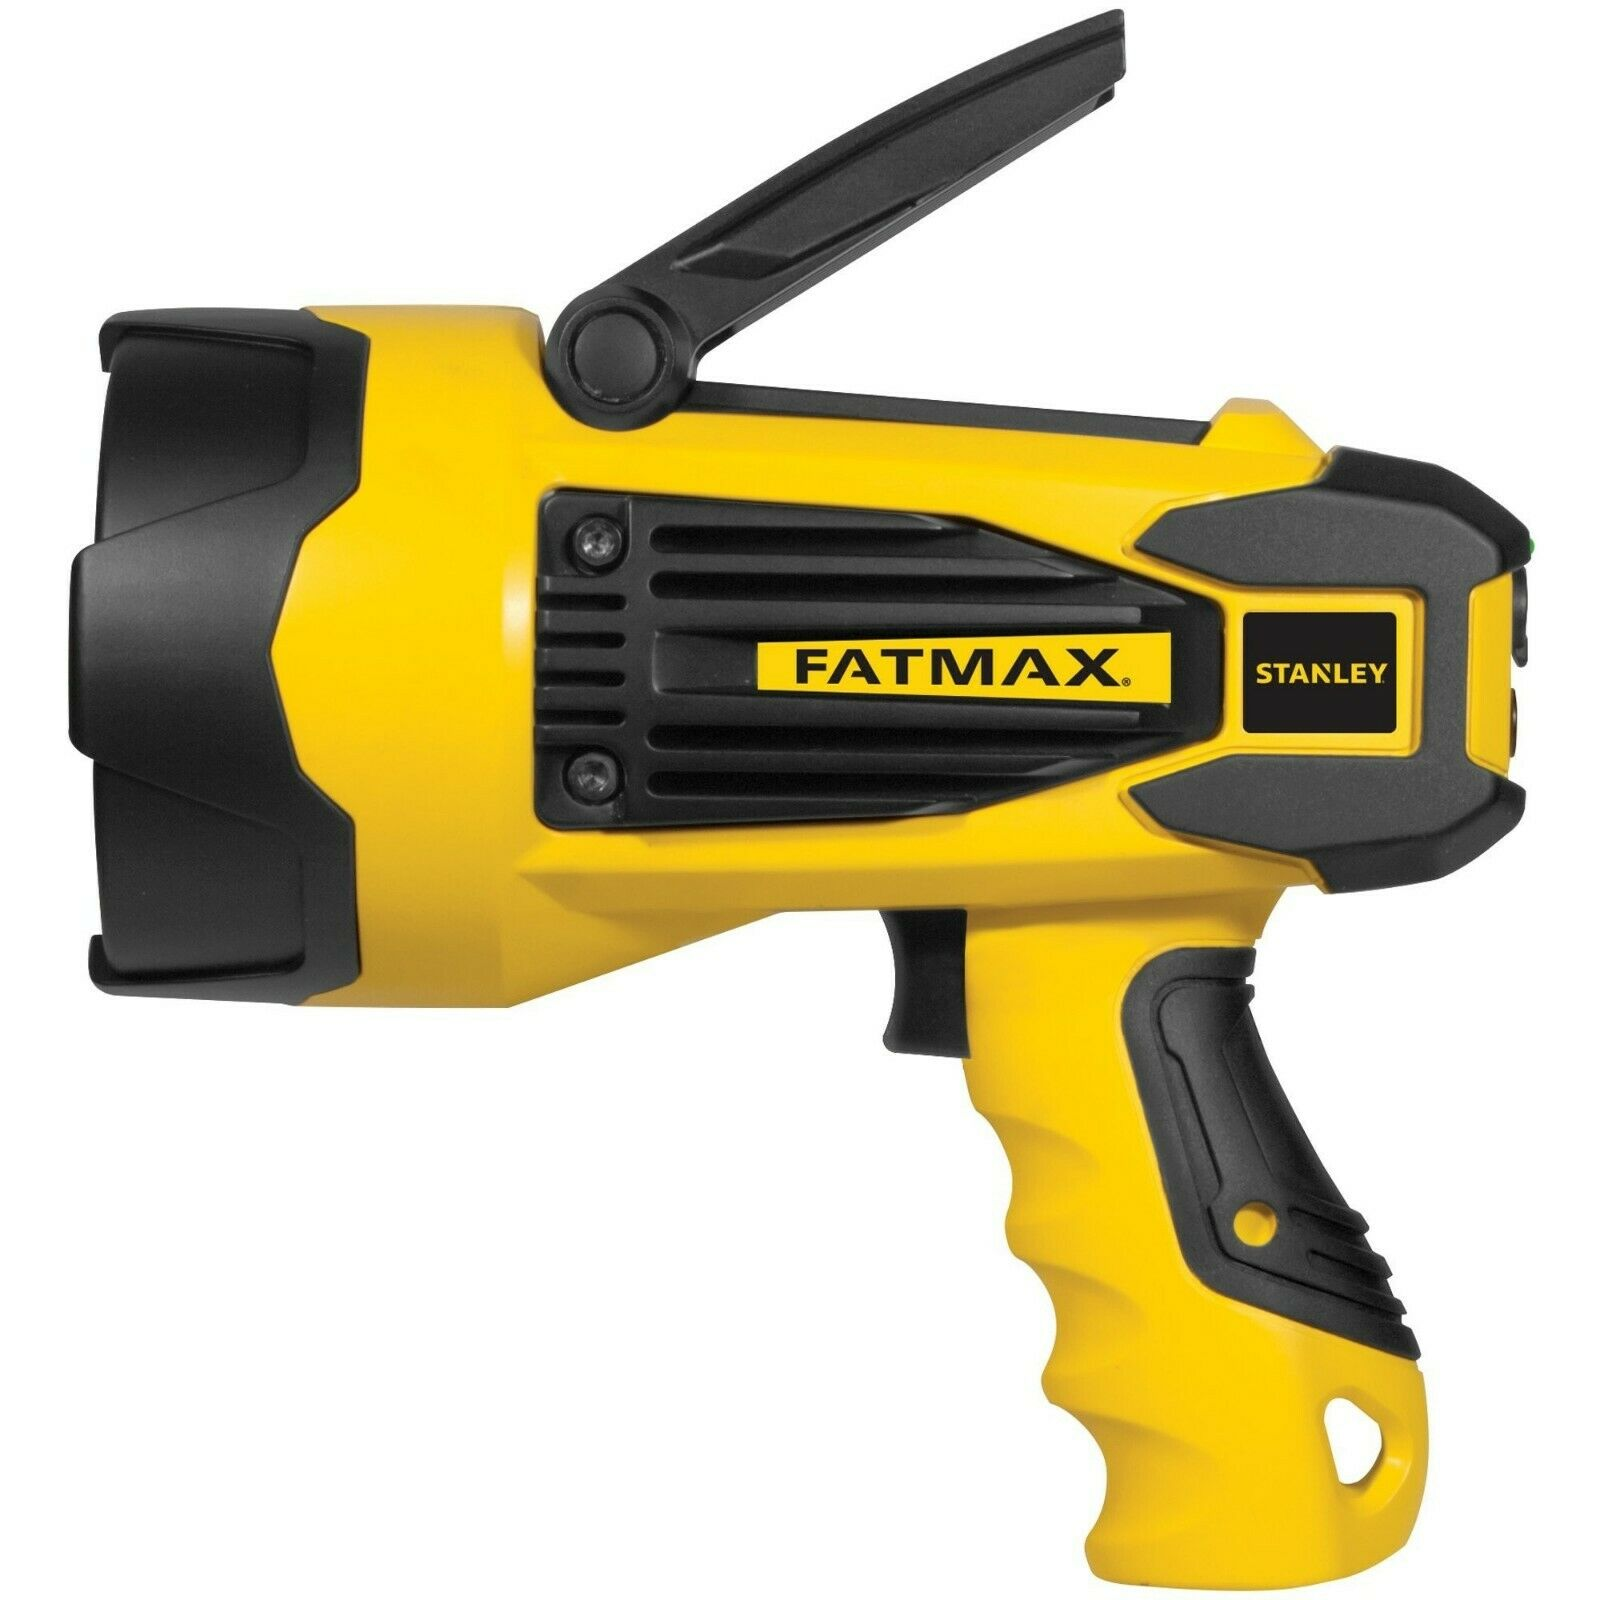 Fatmax Spotlight Flashlight 920 Lumens Rechargeable Work Light Ultra-Bright CLO